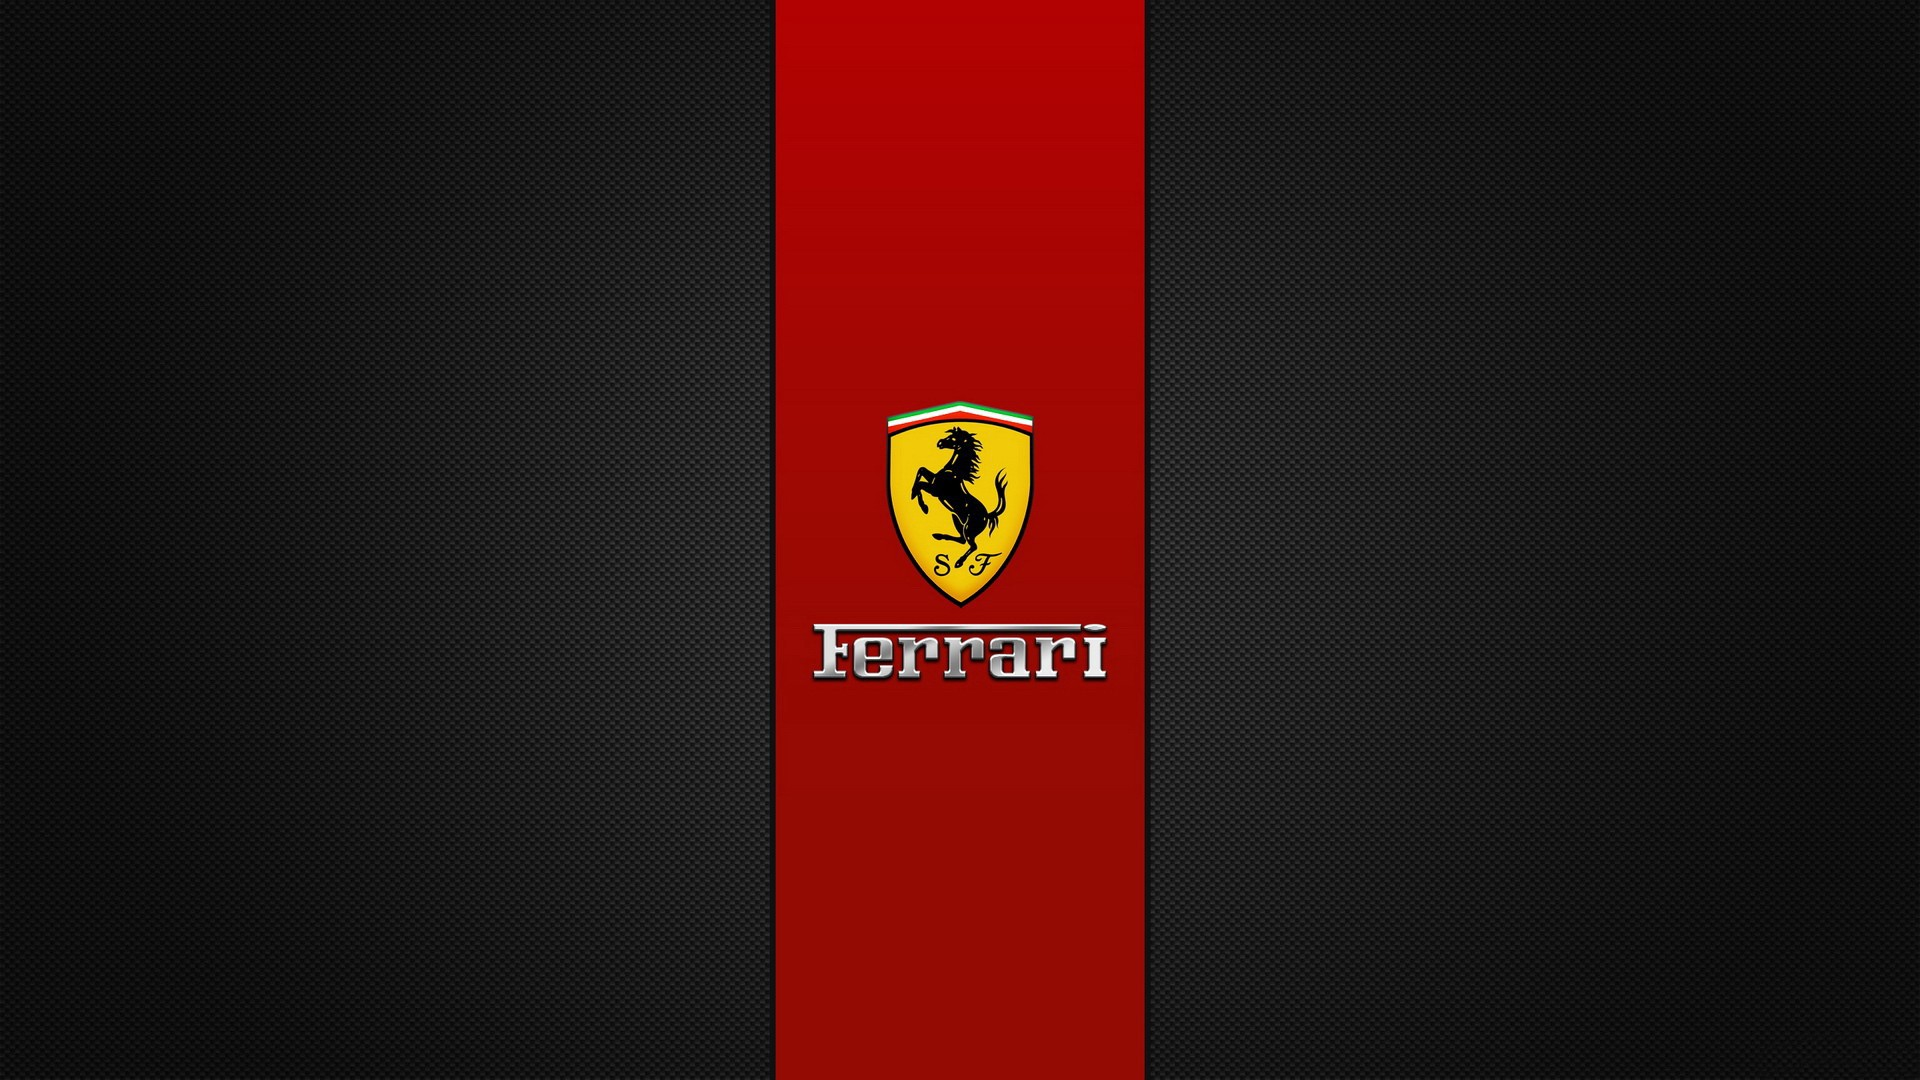 cool ferrari logo wallpaper 36846